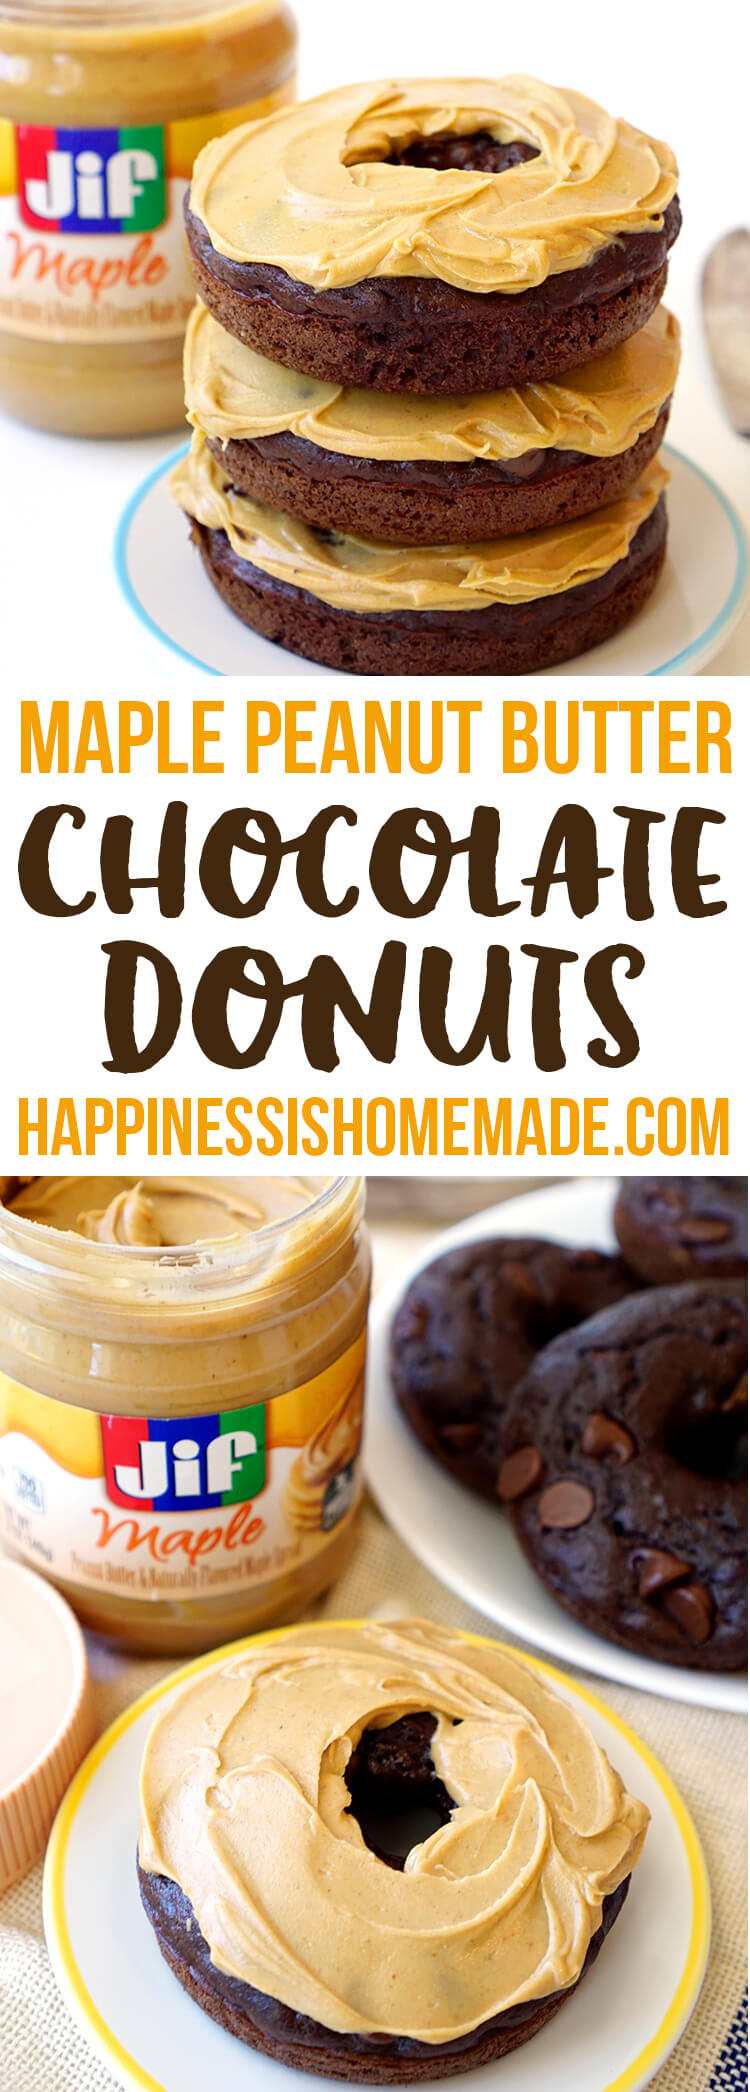 Maple Peanut Butter Double Chocolate Donuts